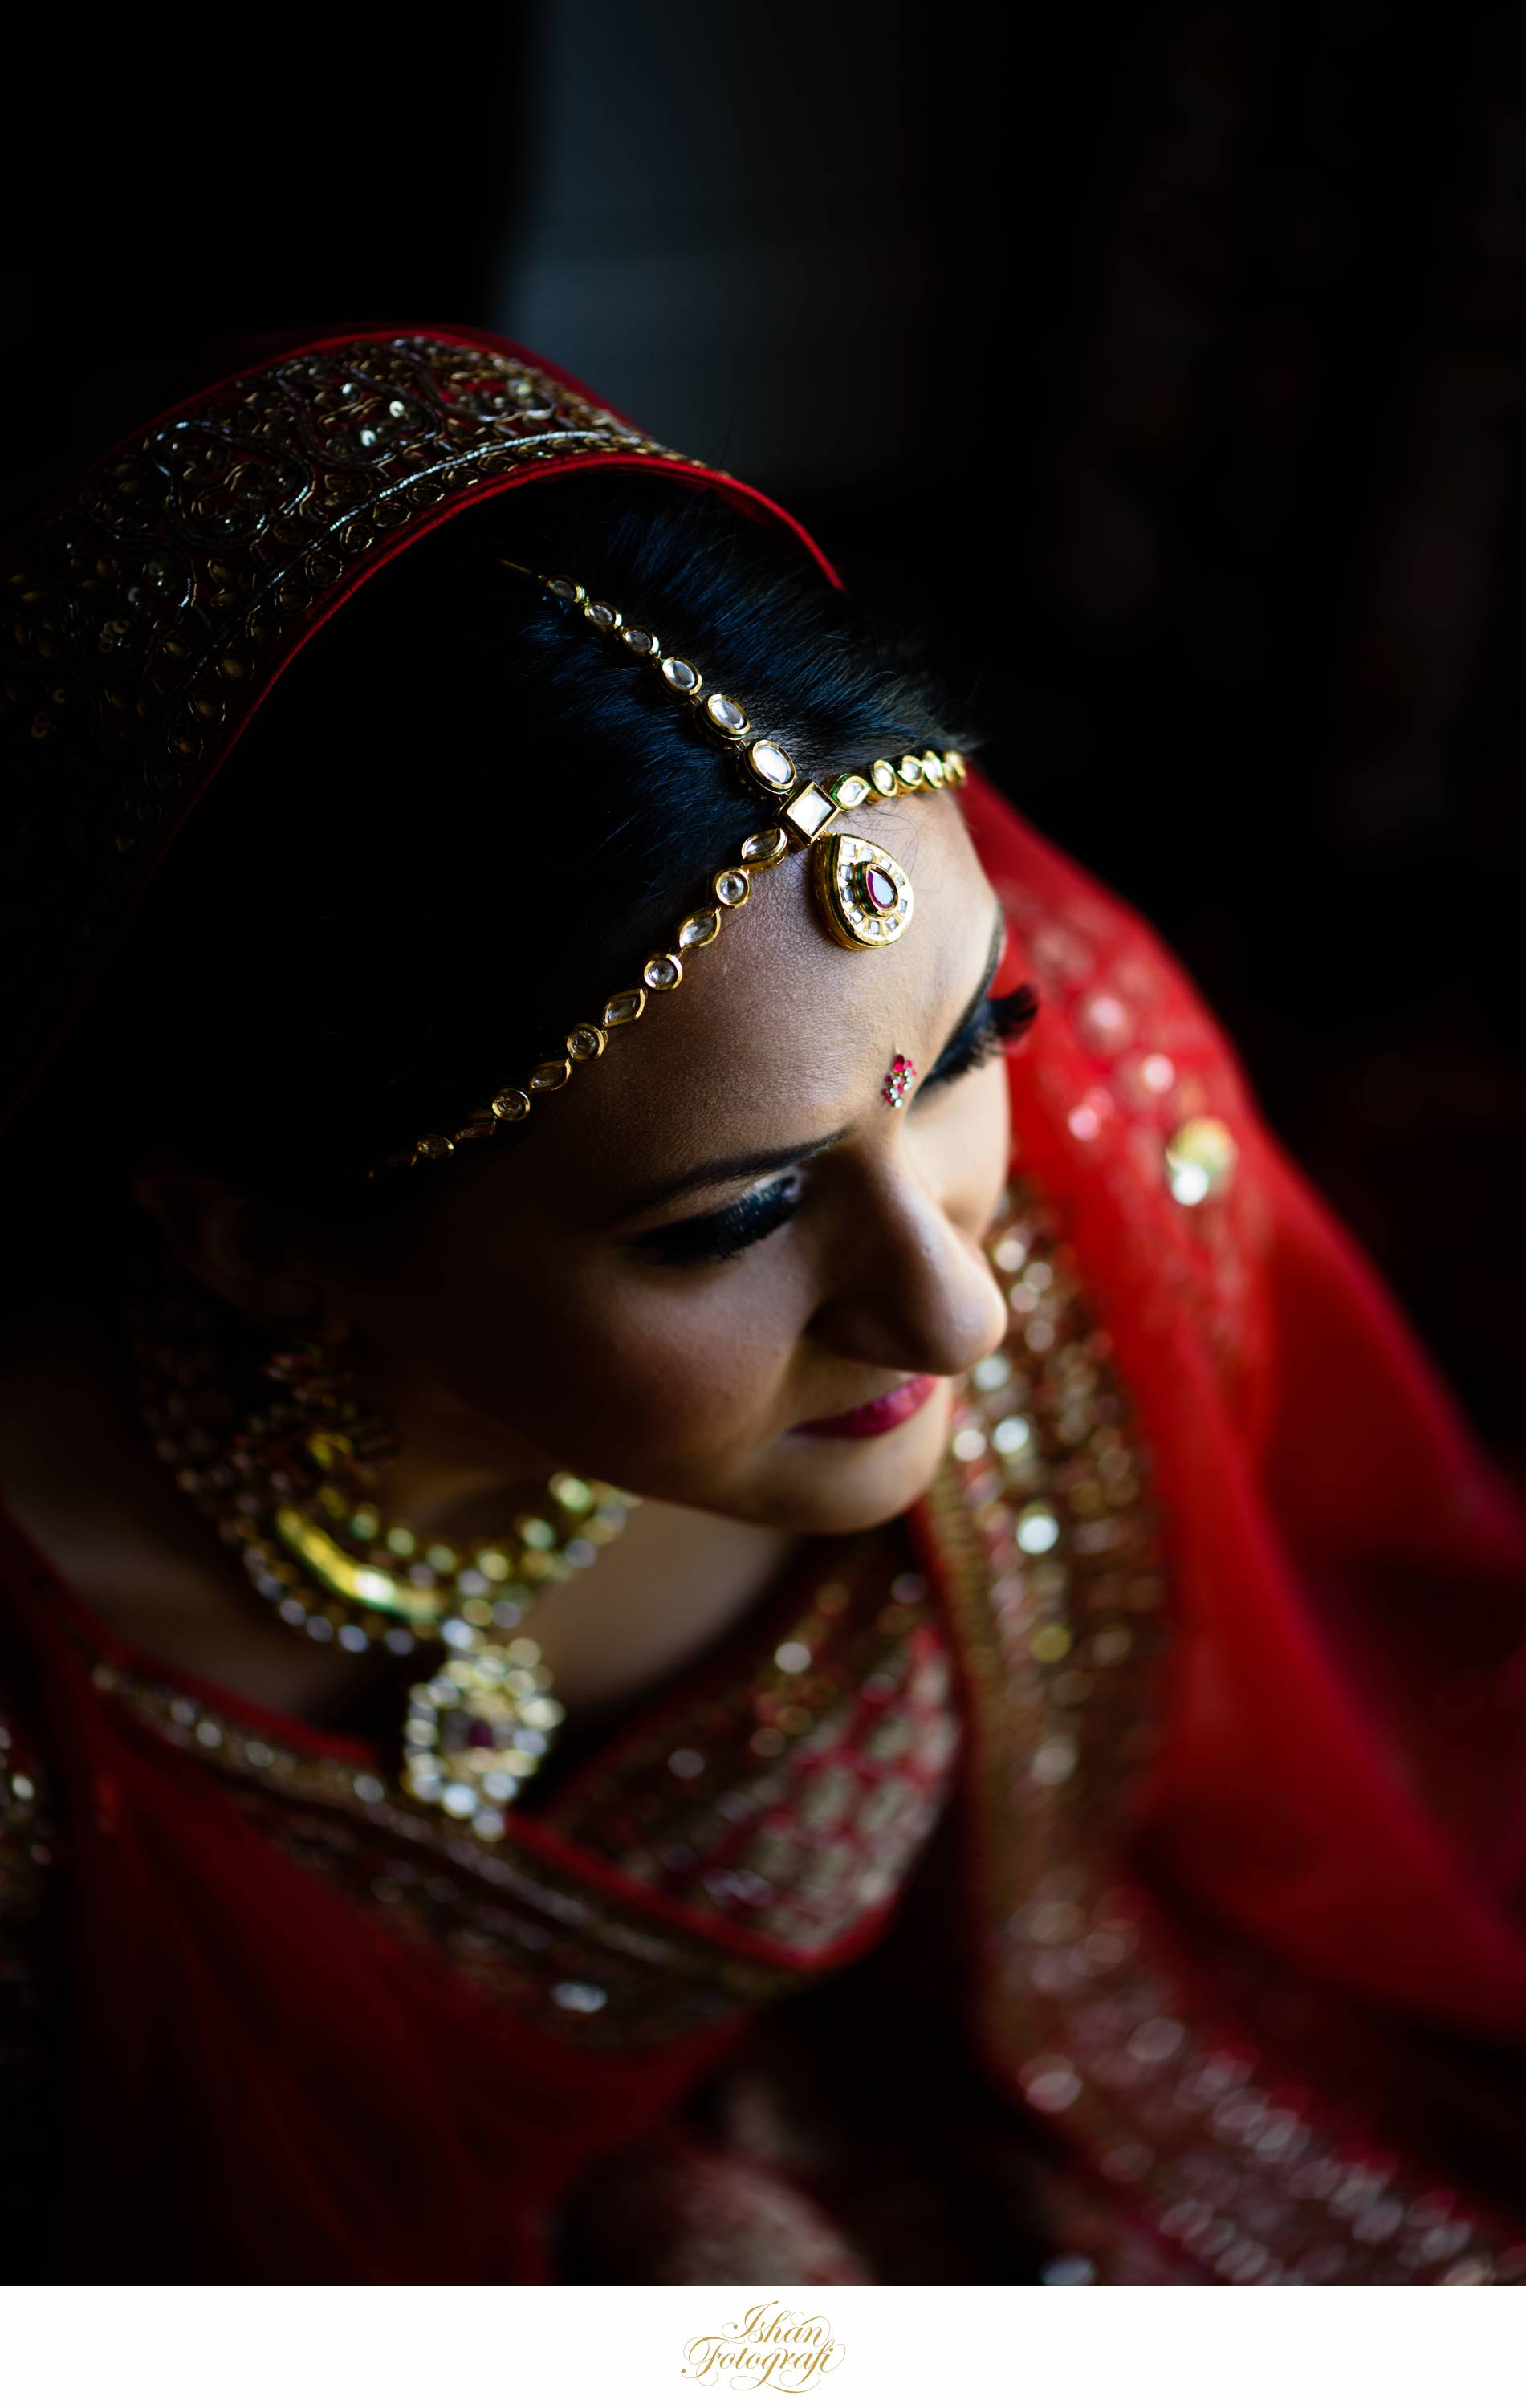 Red is one of the most widely used colors for south asian weddings. Our bride looked stunning!